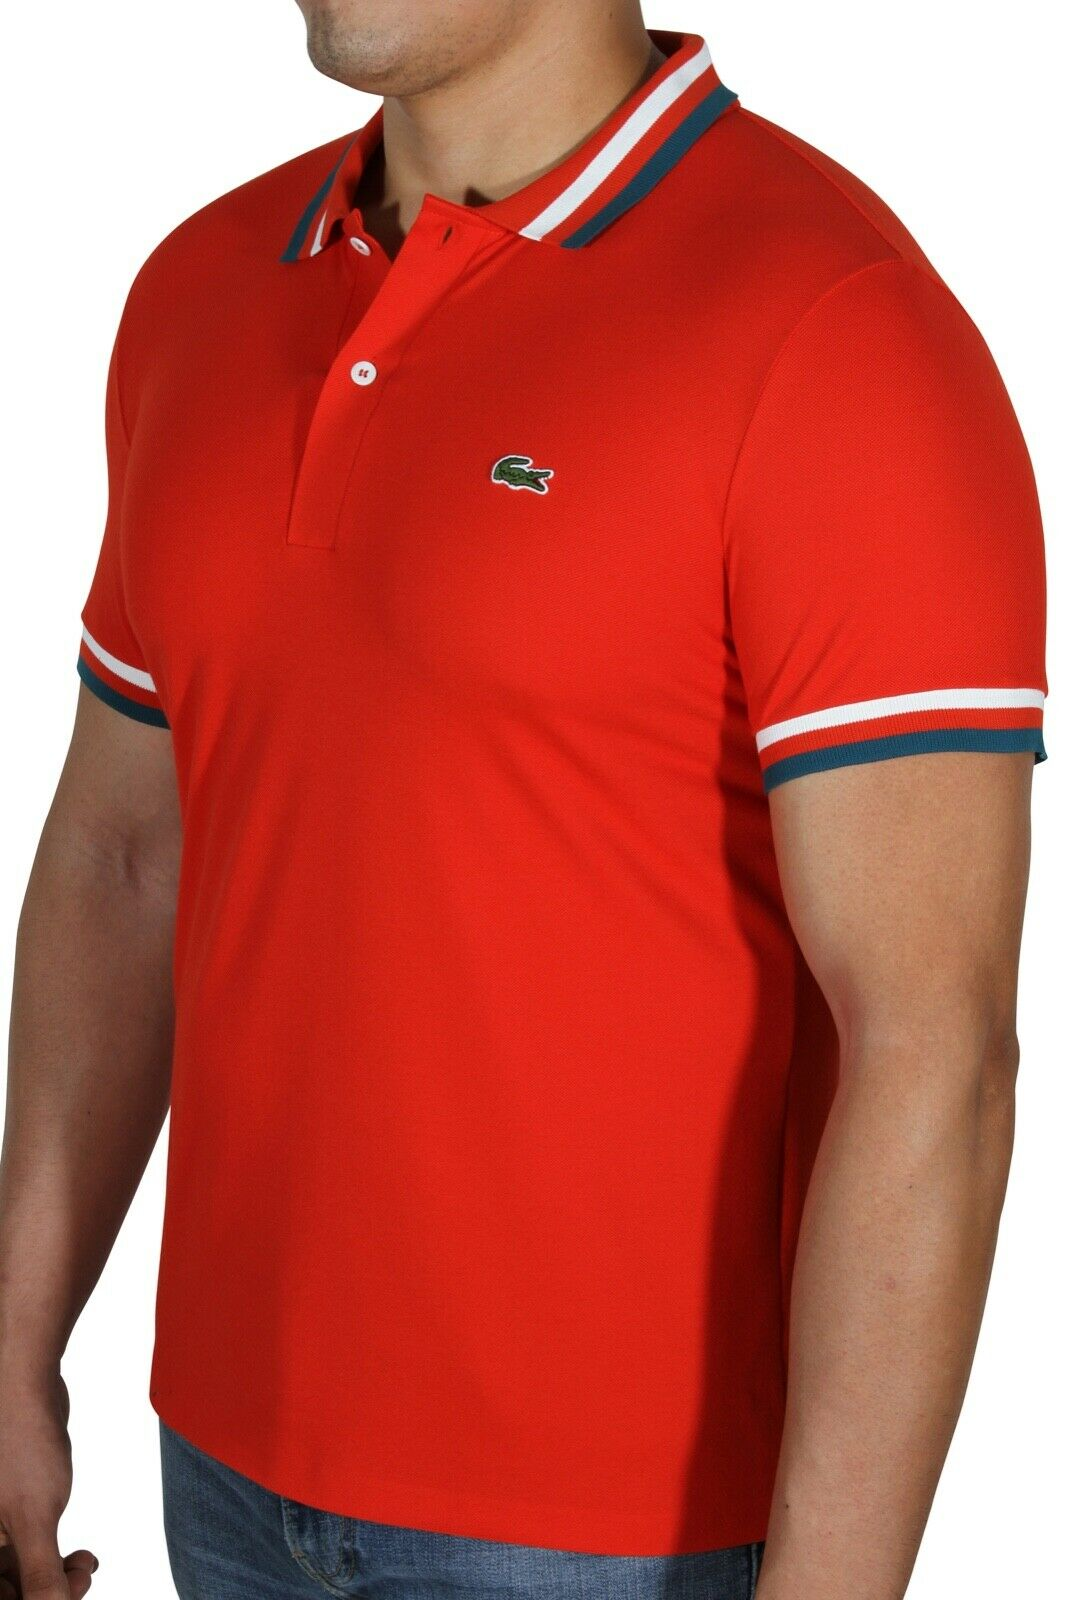 wholesale online reliable quality huge selection of Lacoste Men's Made In France Piqué Polo Shirt